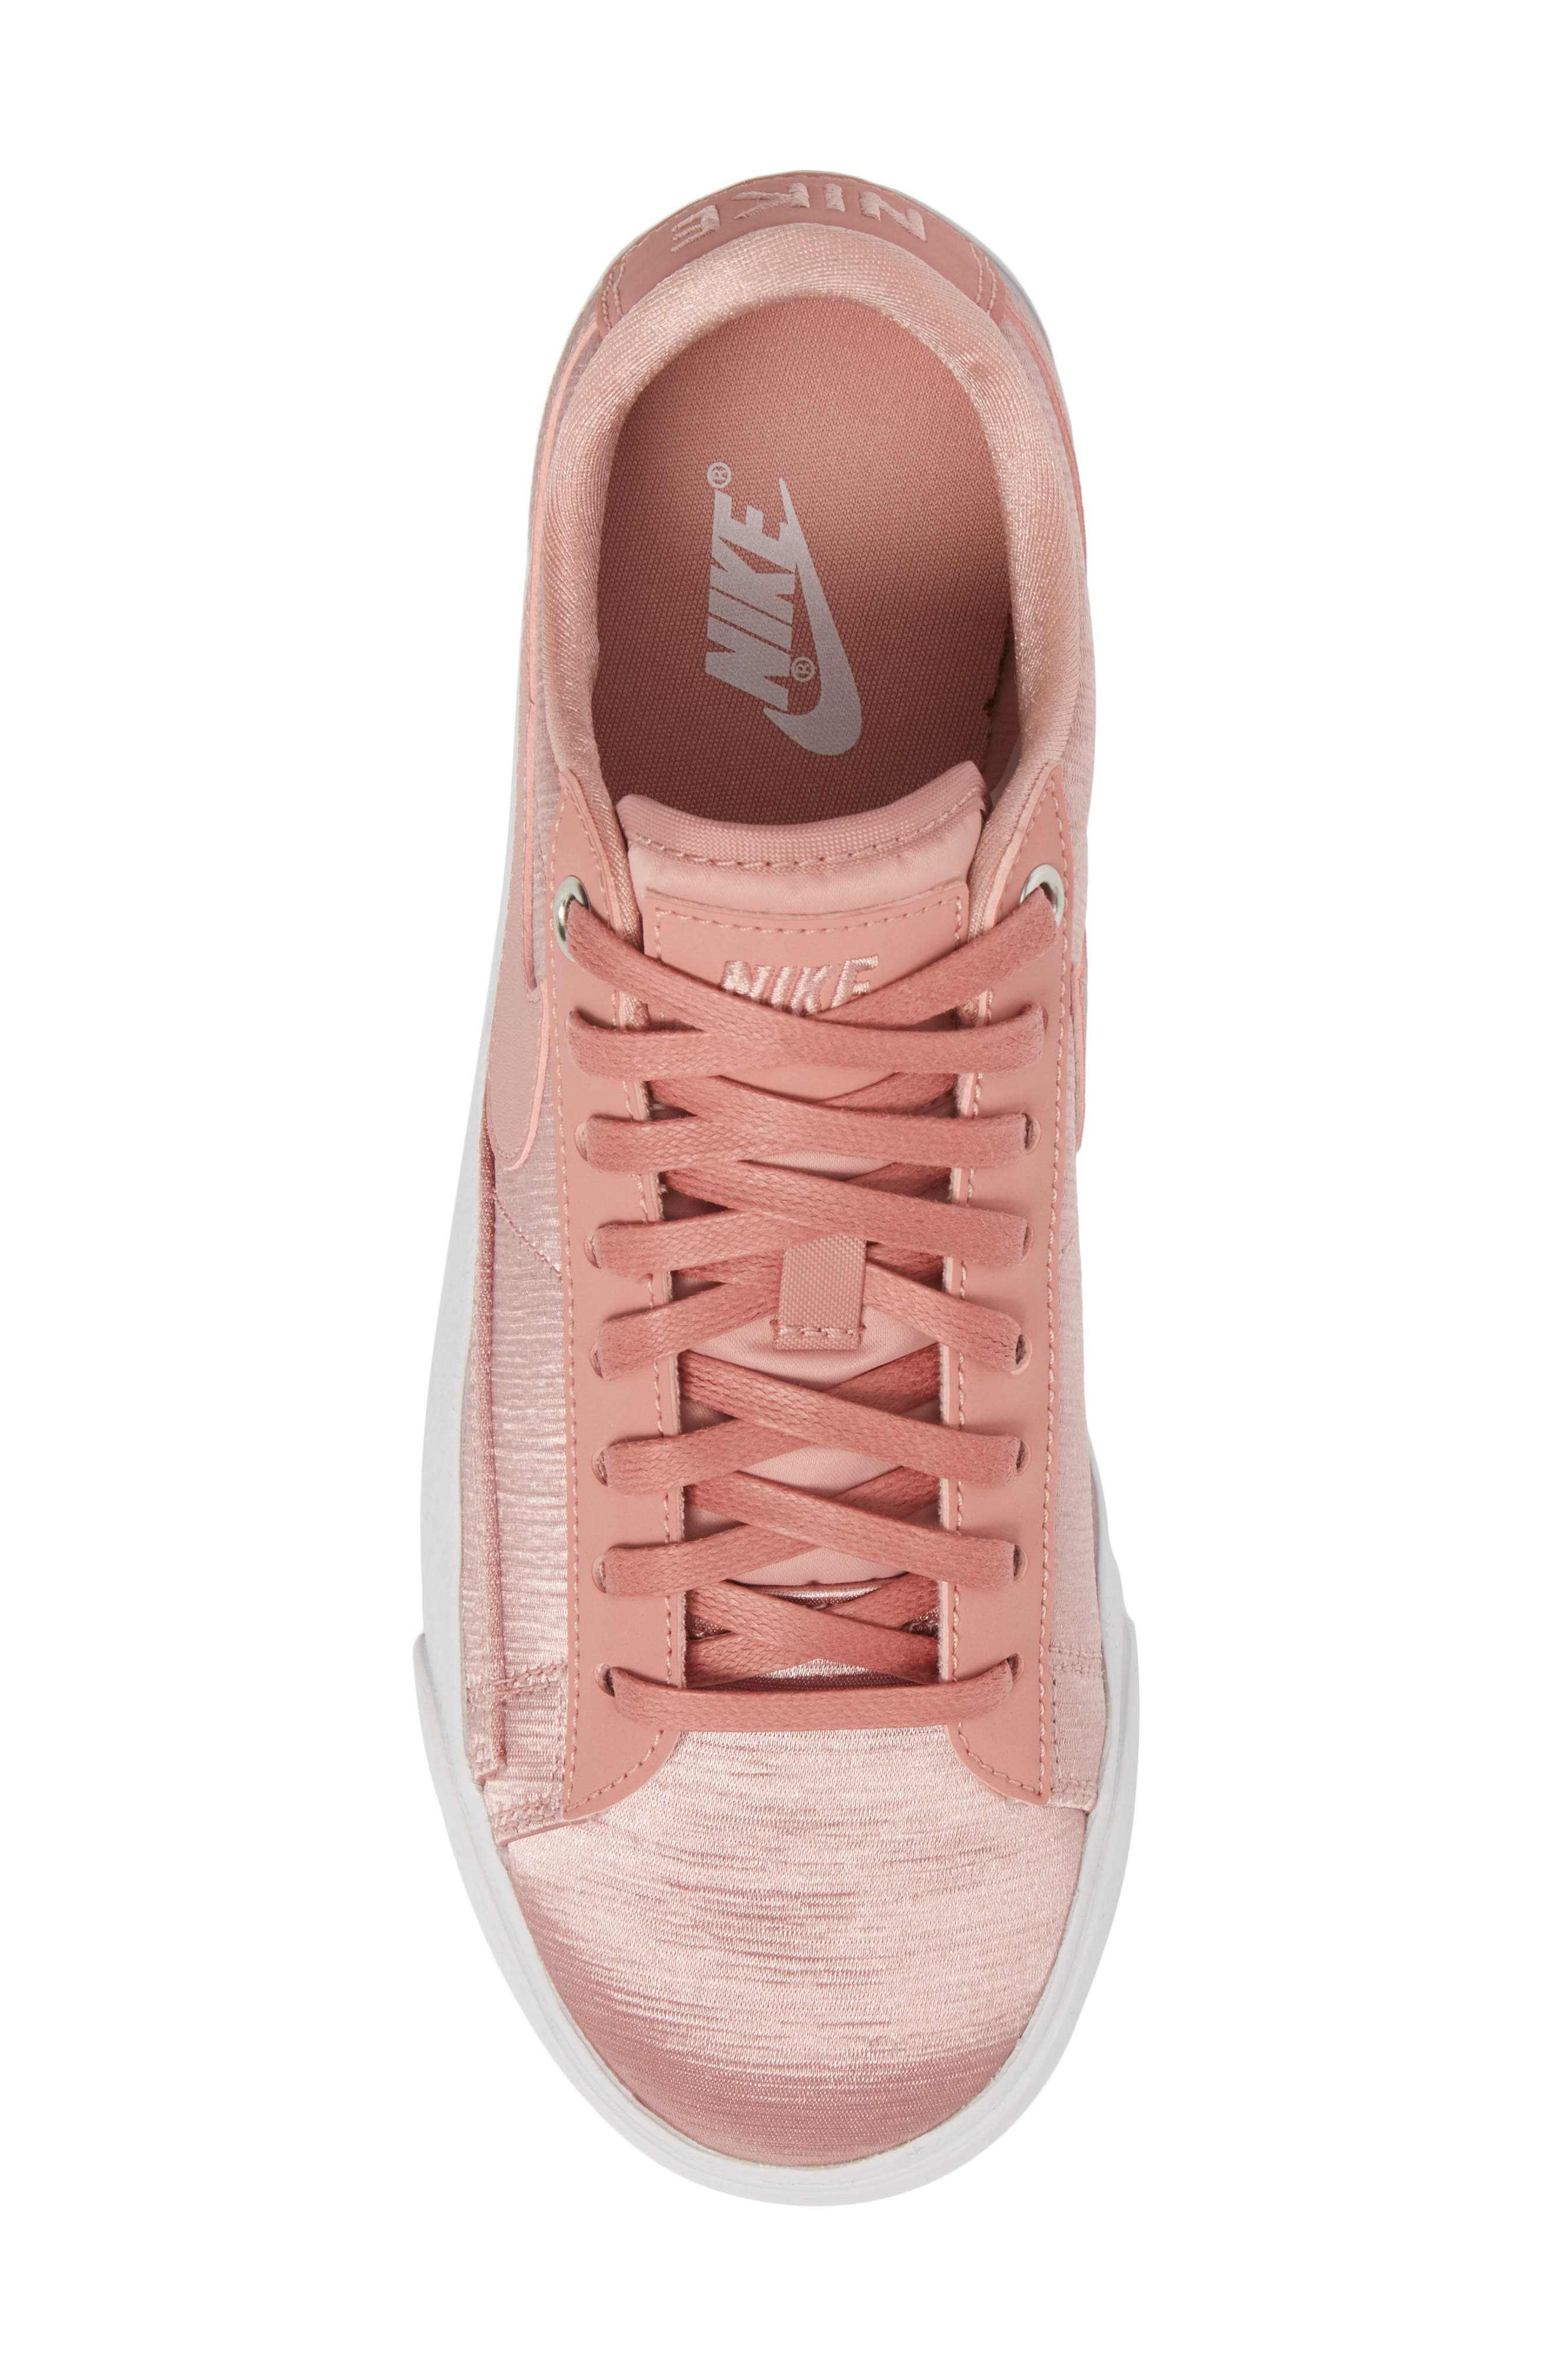 Blazer Low SE Sneaker,                             Alternate thumbnail 5, color,                             Rust Pink/ Rust Pink